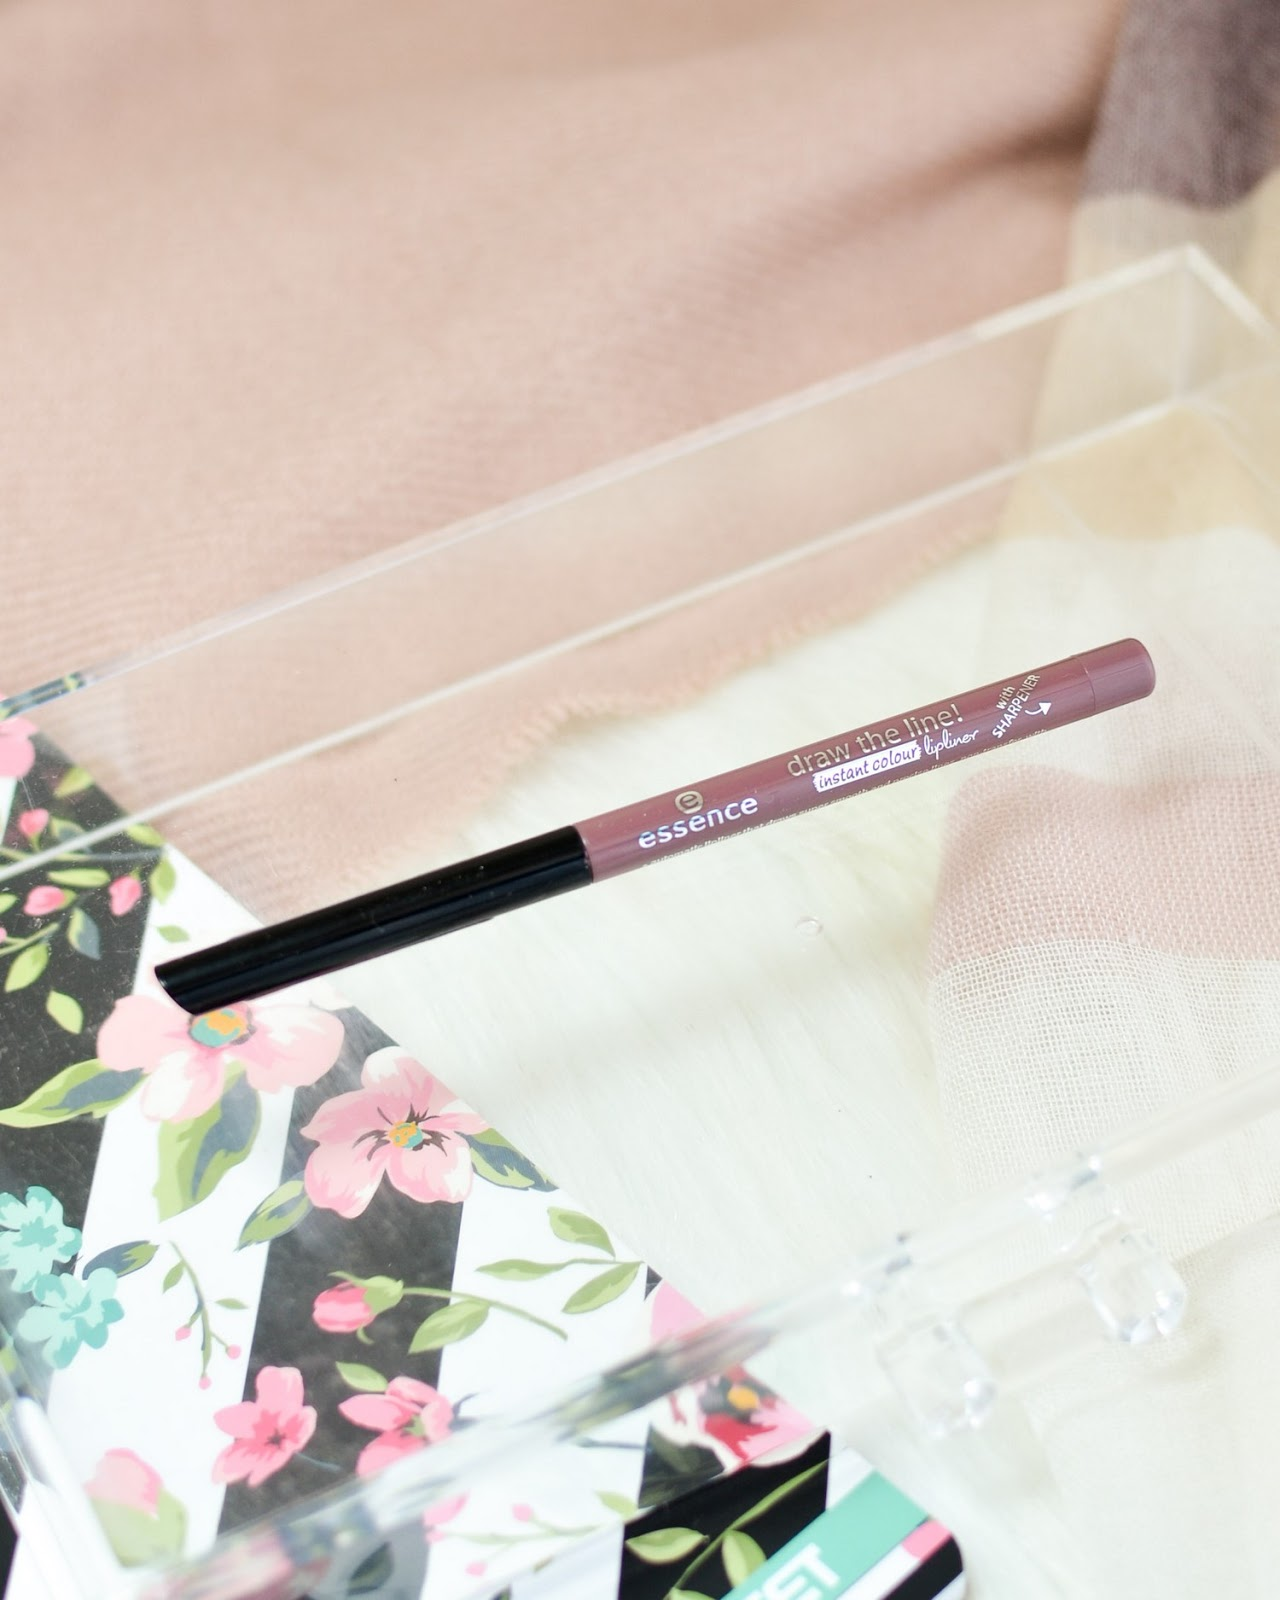 Essence Draw The Line Instant Colour Lipliner 05 So Un-Grey-Tful